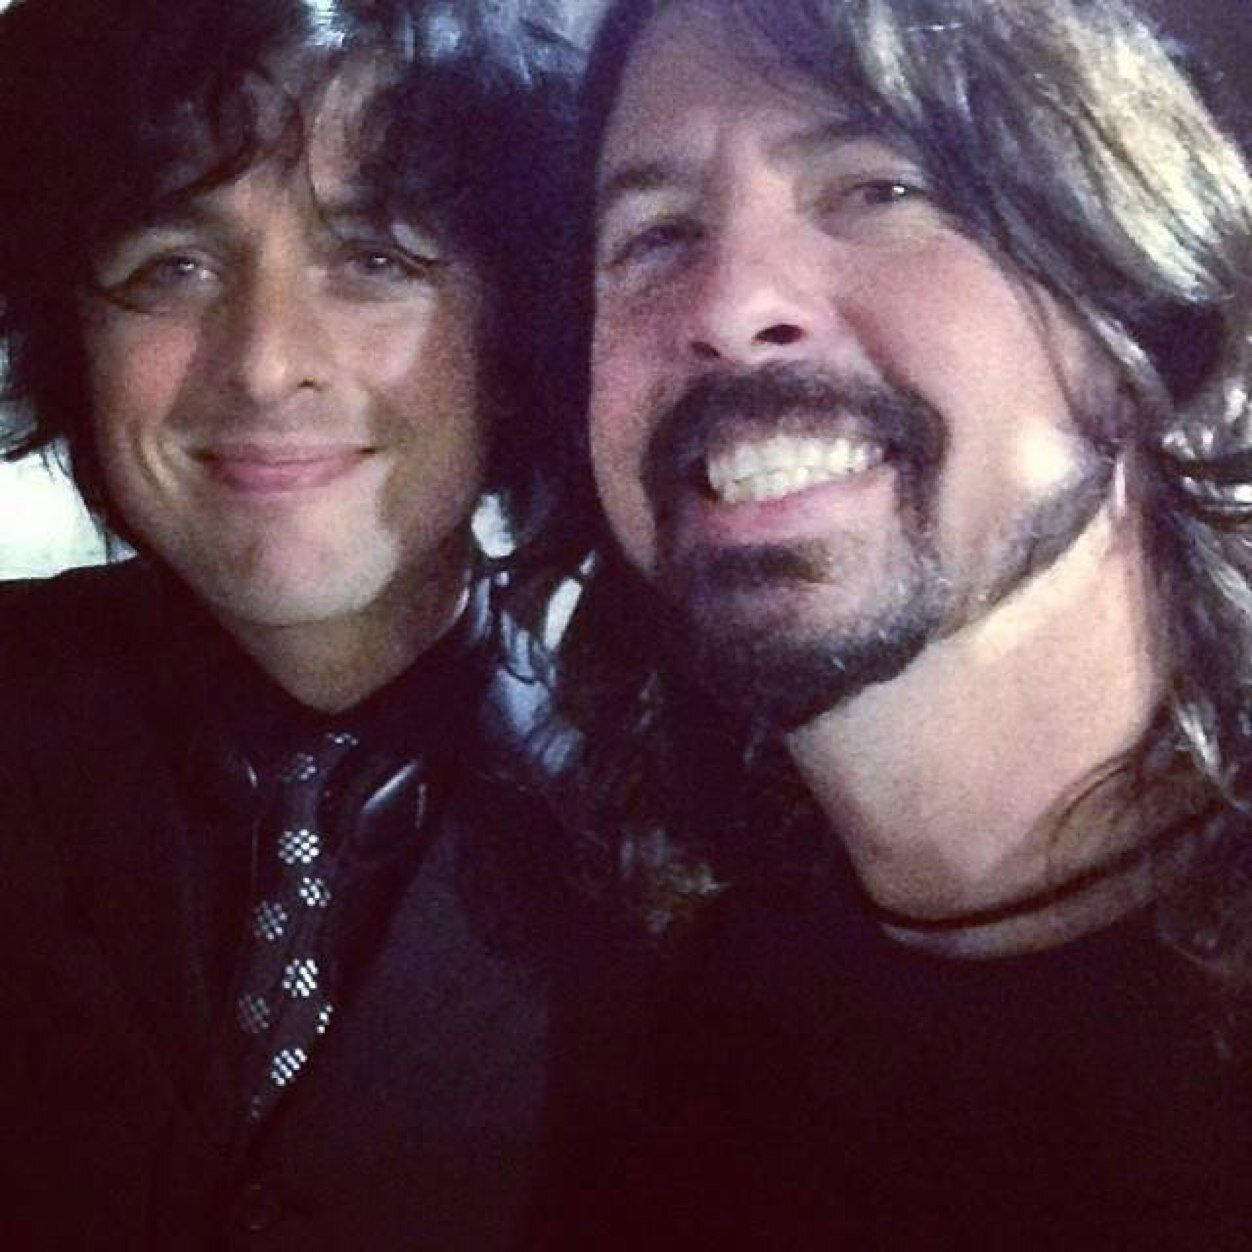 Billie Joe Armstrong and Dave Grohl